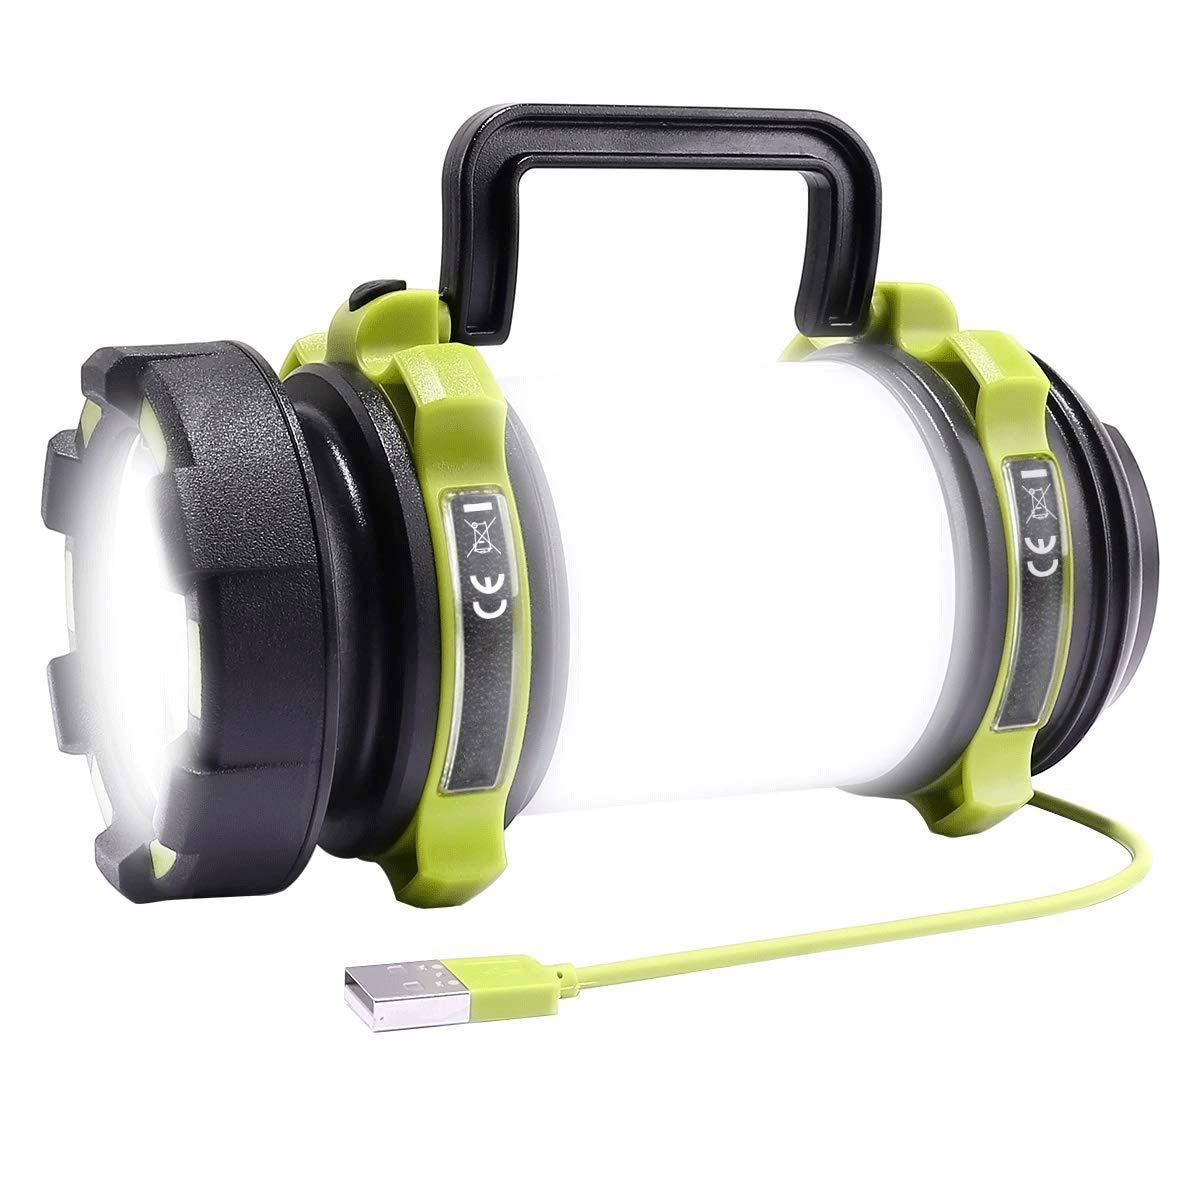 MMPY LE Rechargeable Multi-Function Flashlight Outdoor Tent Light, 500 Lumens Camping Light, Waterproof Outdoor Searchlight for Emergency, Fishing, Hiking, Etc.